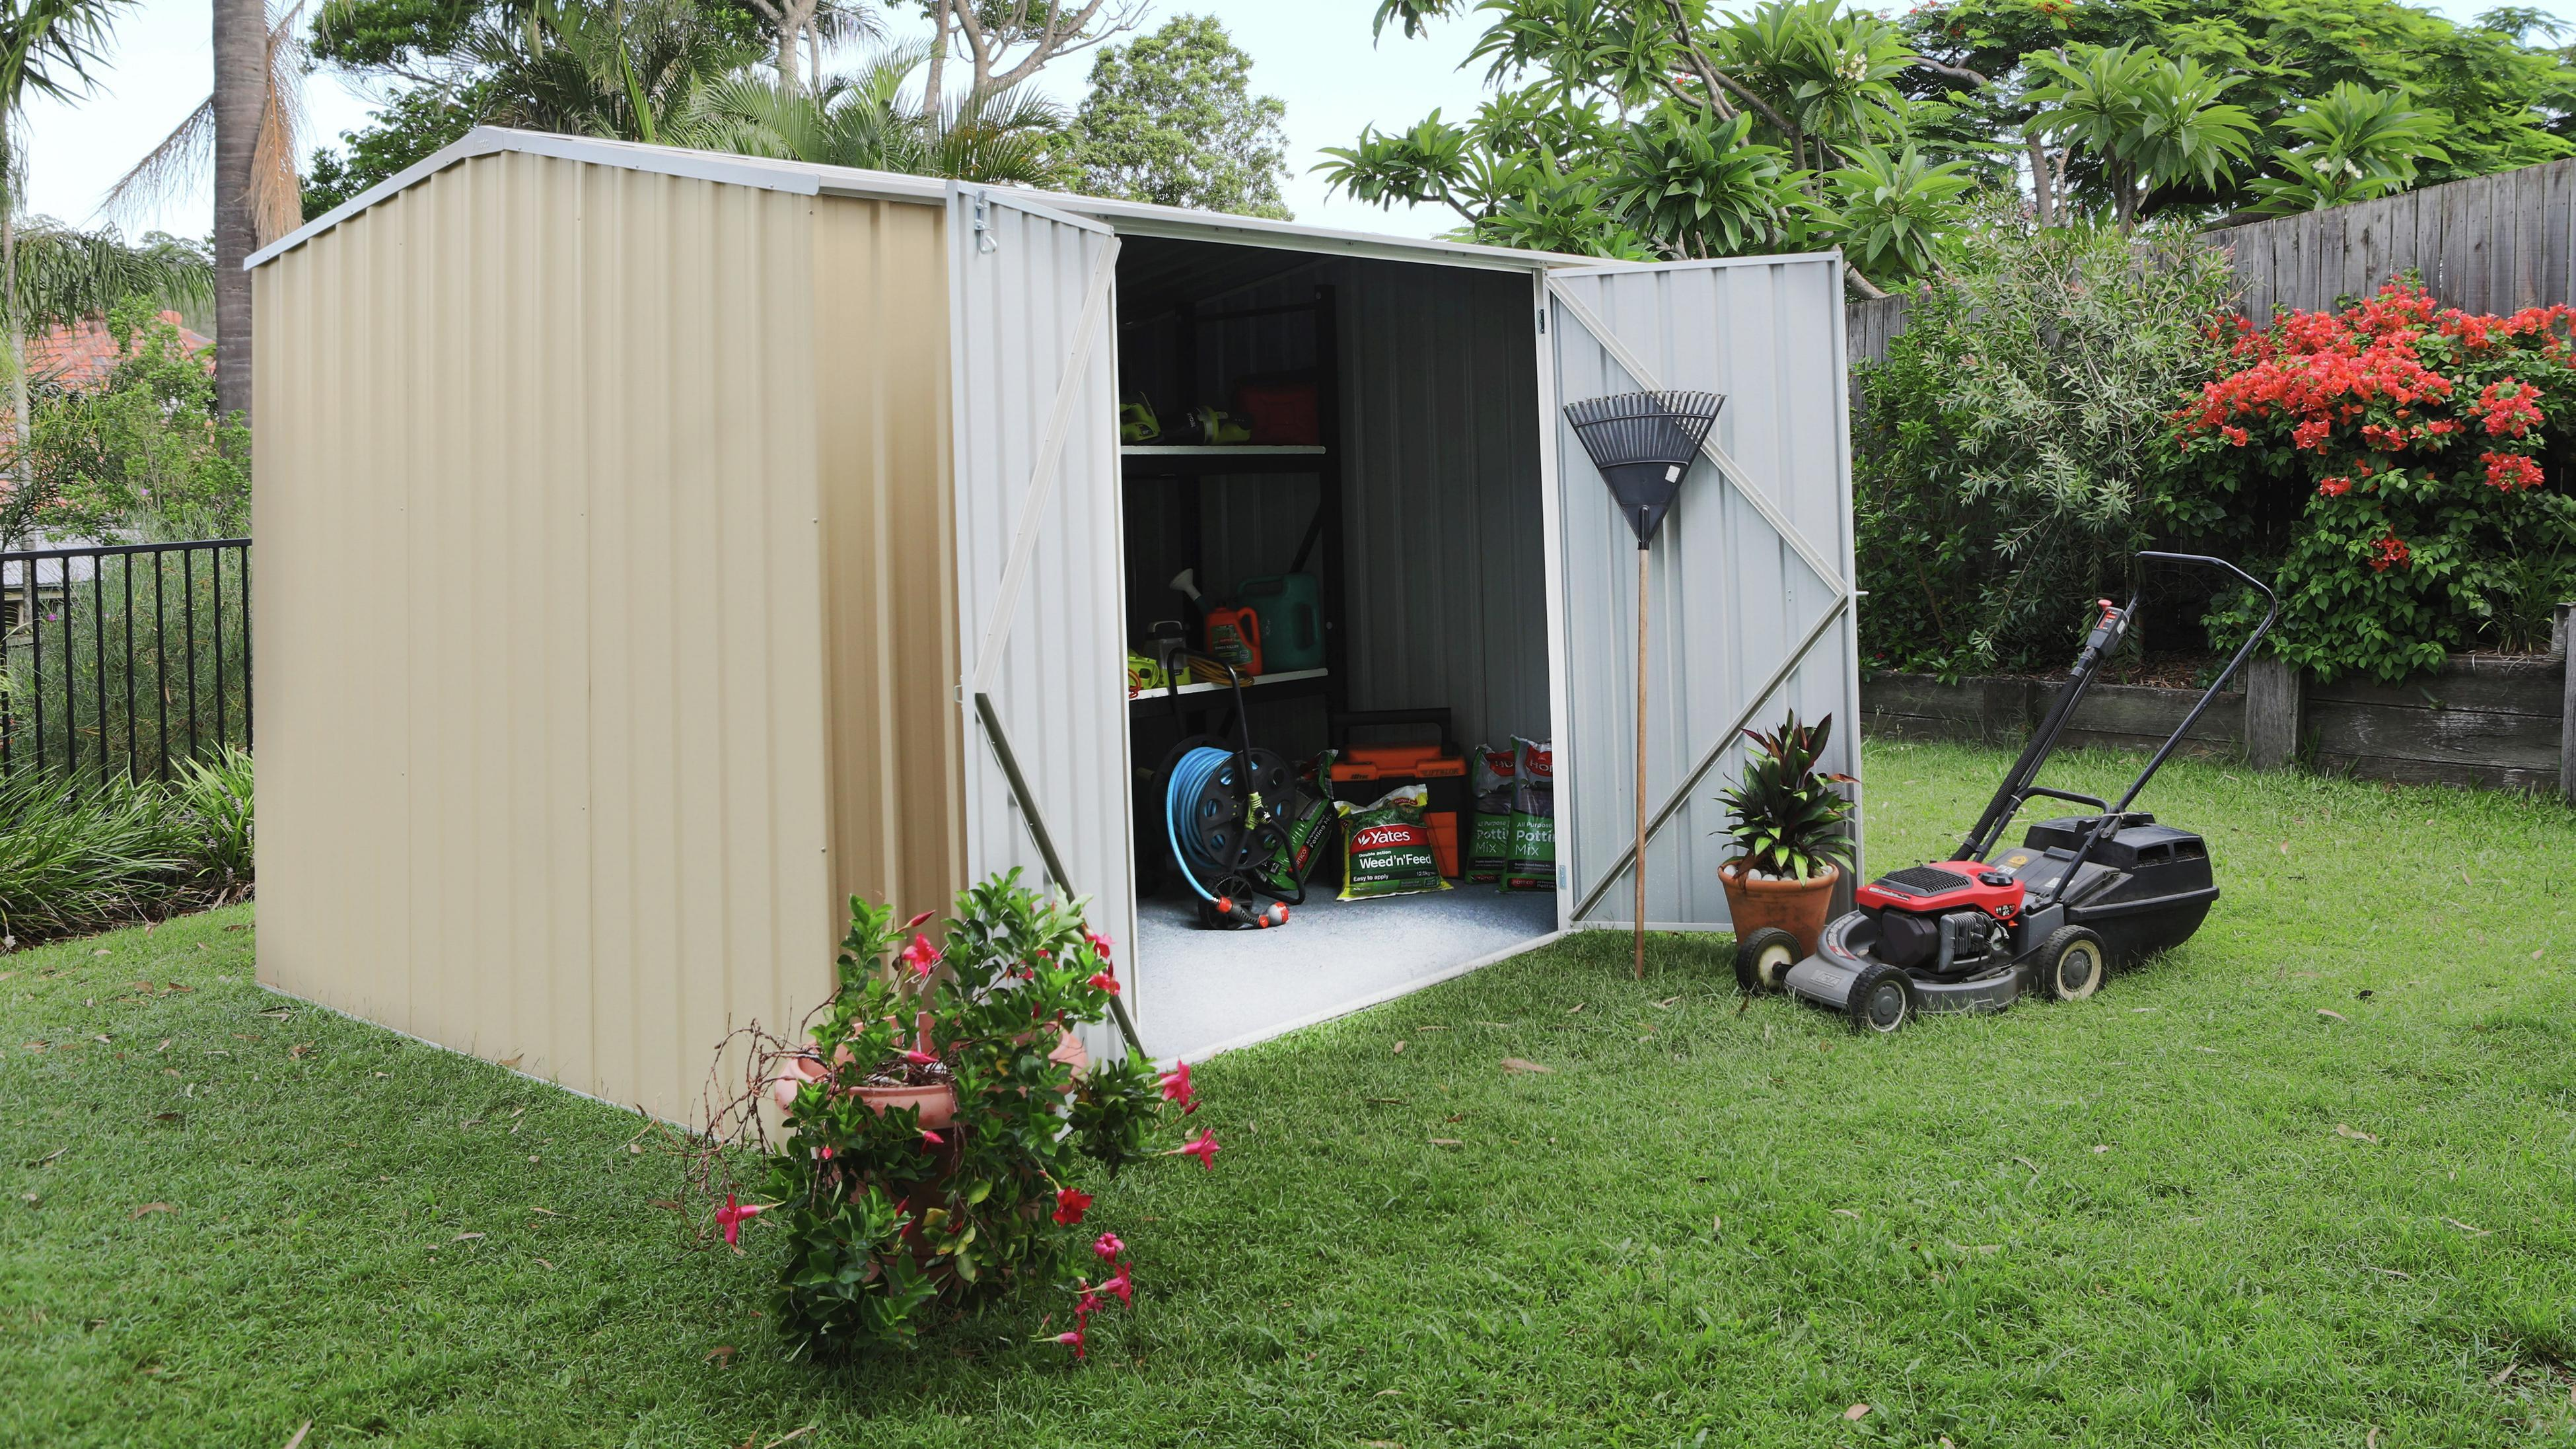 Cream shed in backyard surrounded by palms. Door open with lawn mower showing.